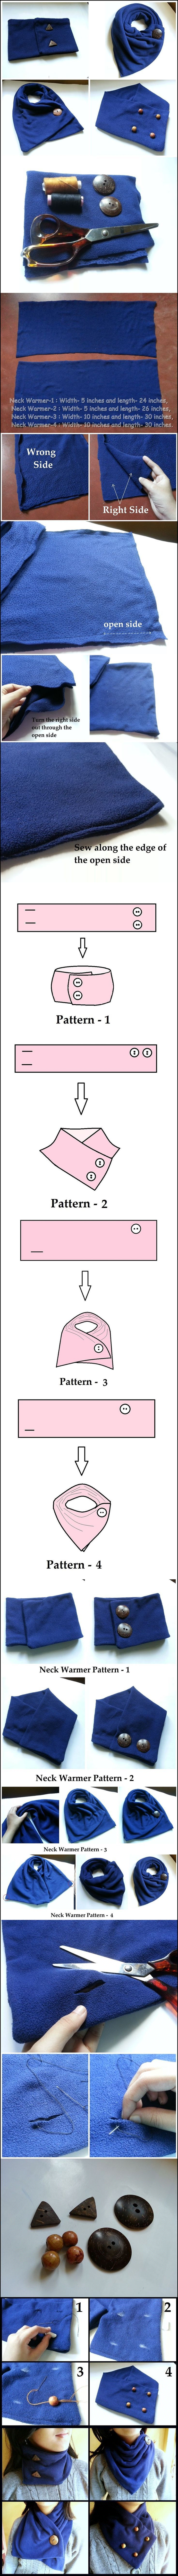 best sewing images on pinterest sewing crafts sewing ideas and